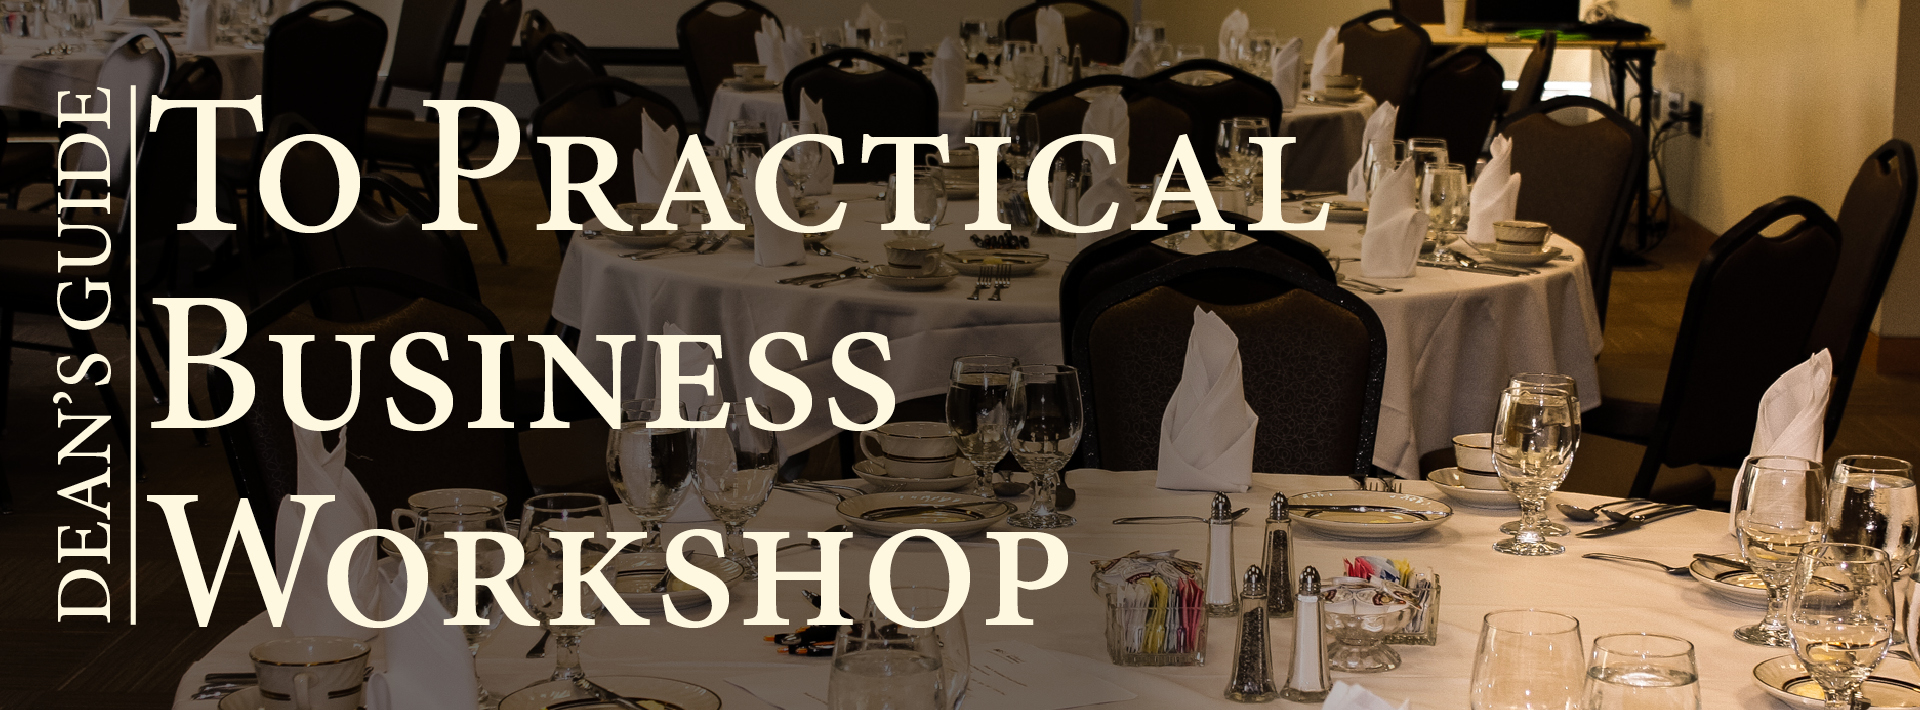 PracticalBusinessWorkshop_Banner